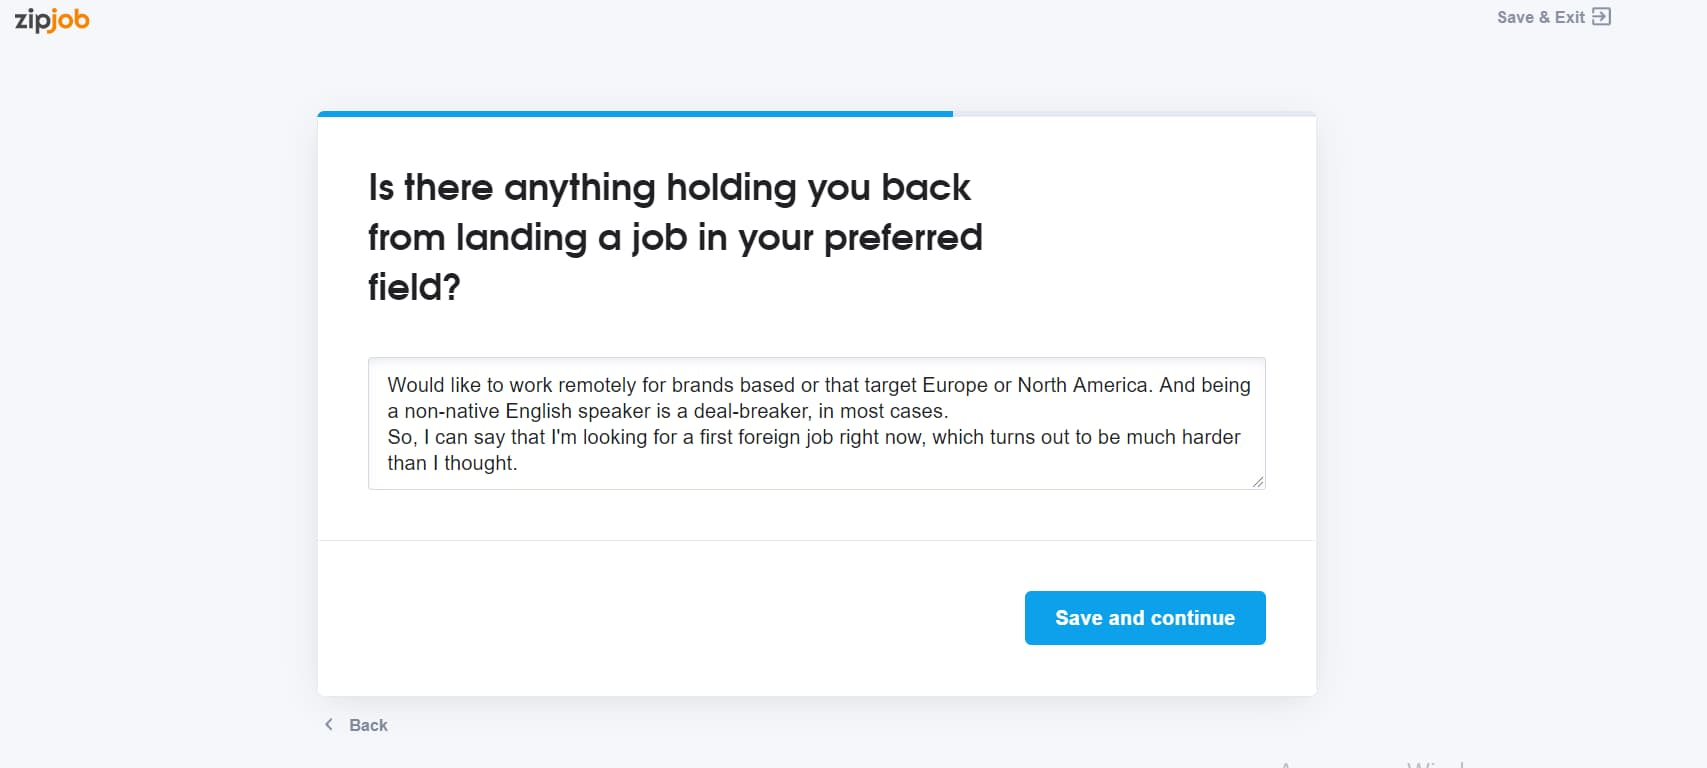 zipjob what is holding you back